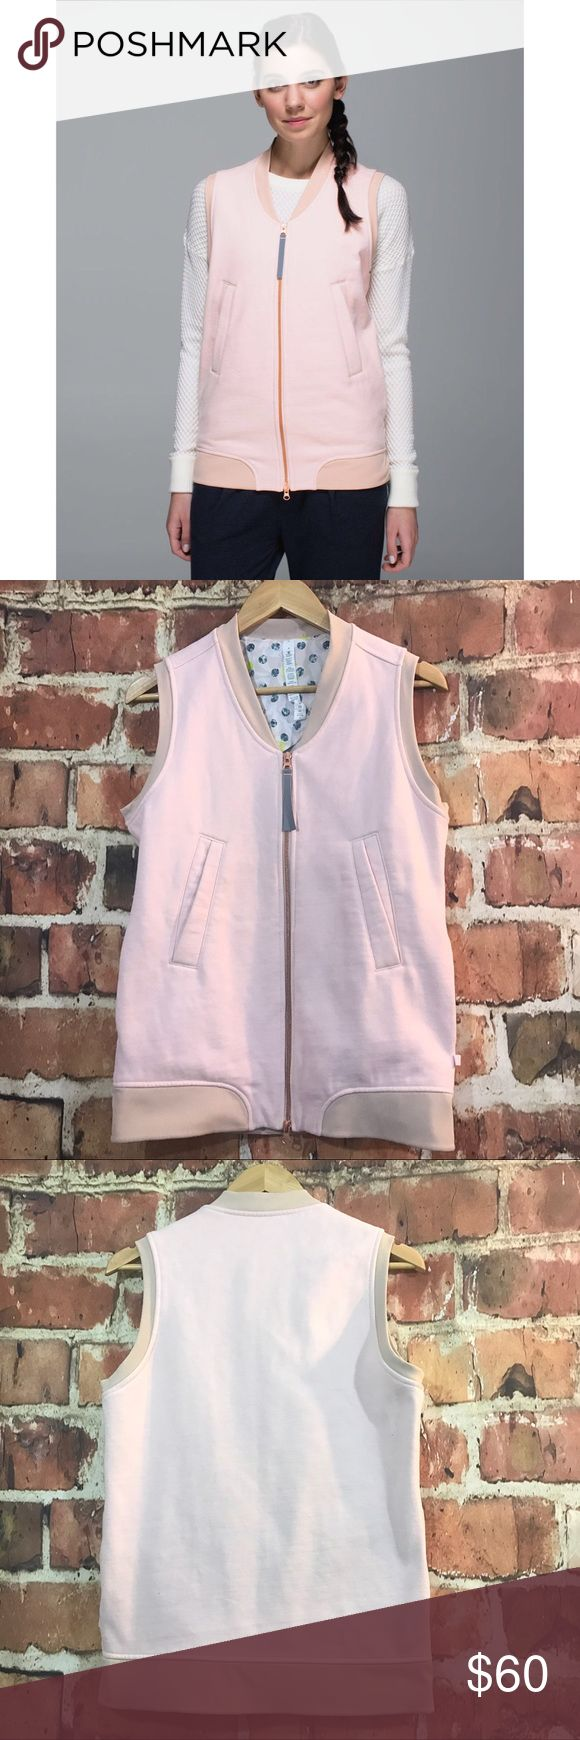 Lululemon Pale Pink Departure Zippered Vest 4 Lululemon Departure vest. Has a loose fit and is ideal for layering! Light Pink in color for endless styles! Fleece material and perfect for the cold! Gold zip closure and reflective zipper pull. Size 8. Preloved & in great condition! Retail is $108 + tax! lululemon athletica Jackets & Coats Vests